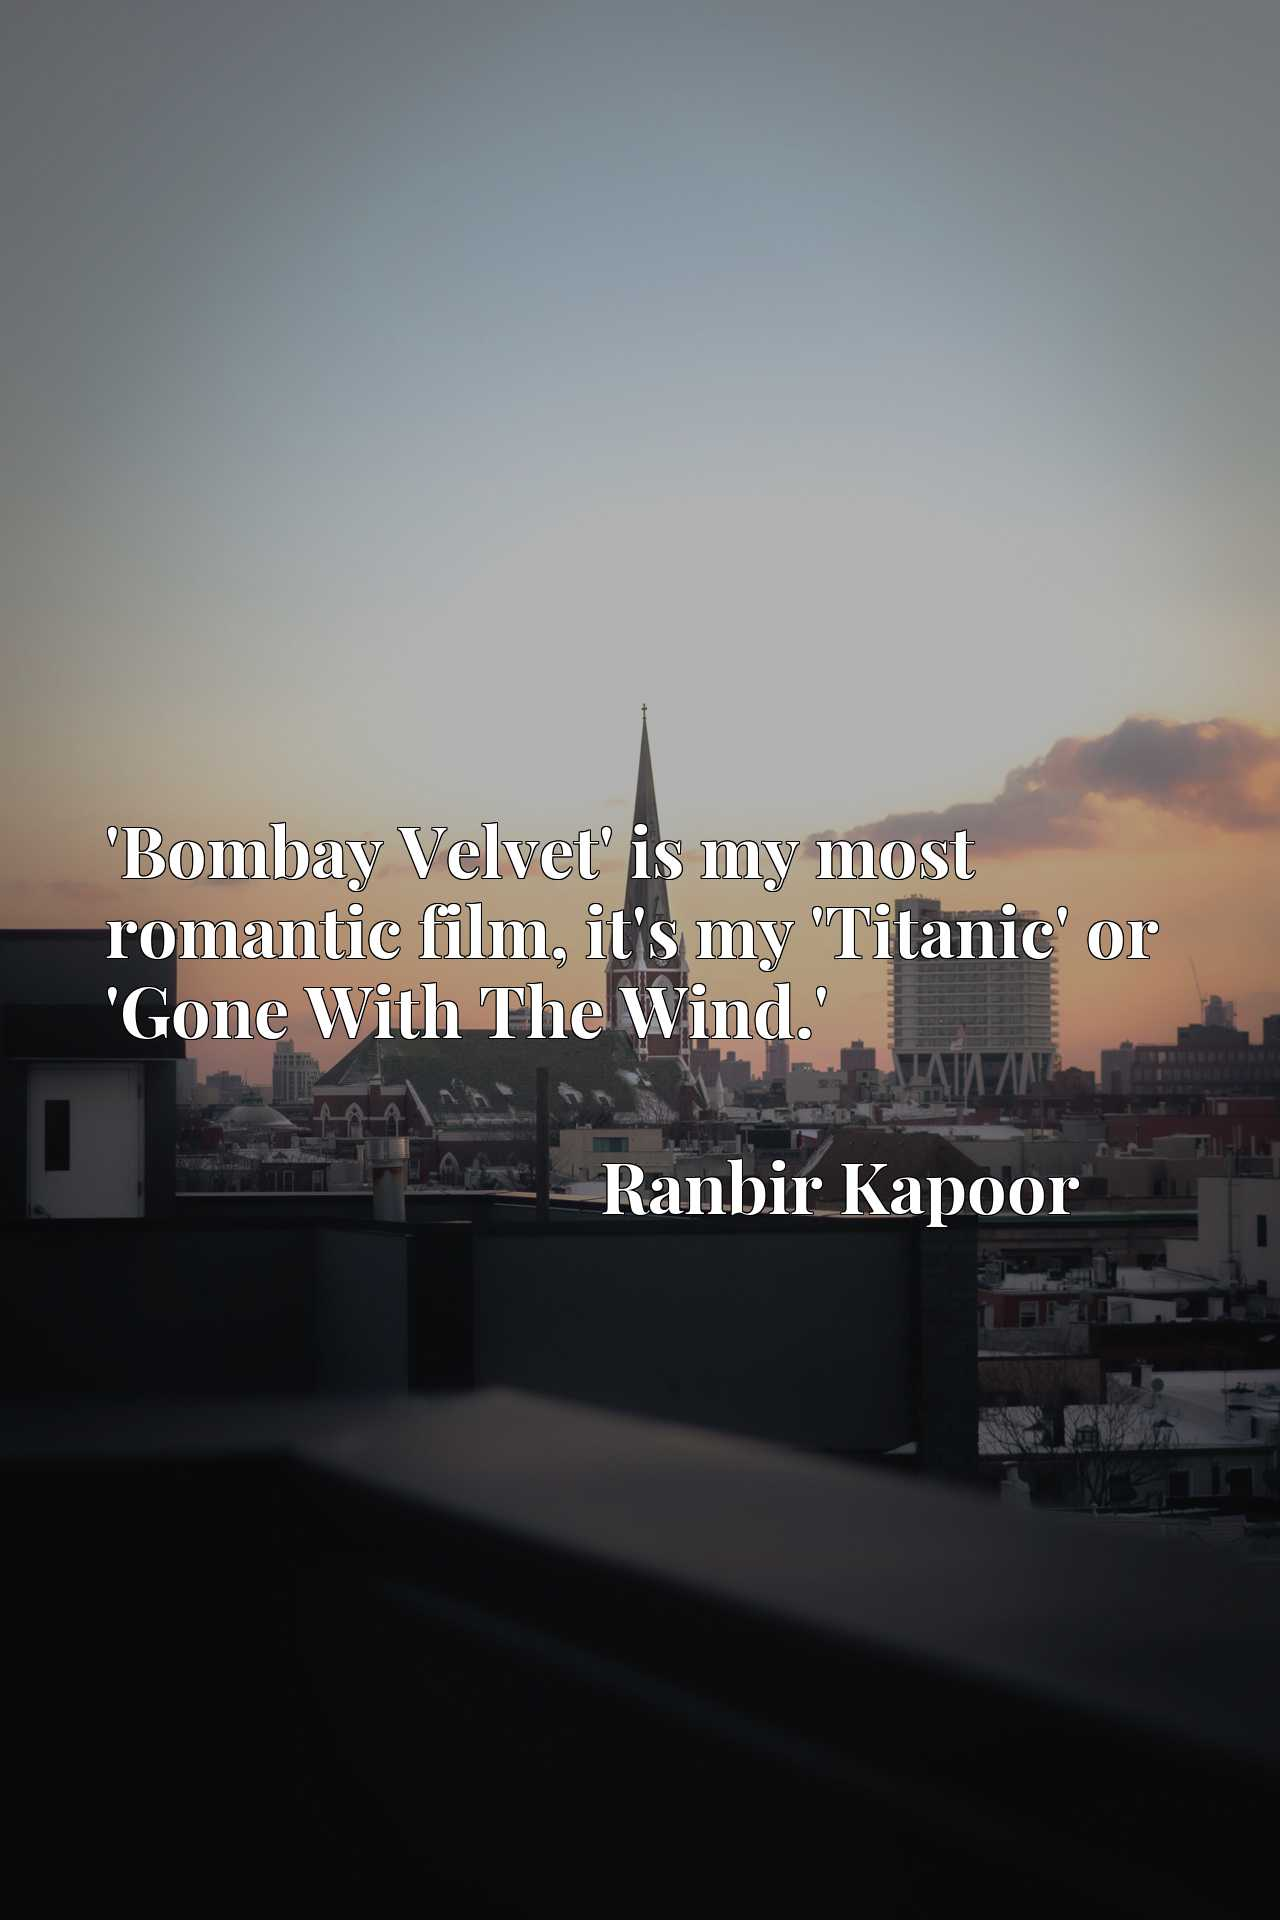 Quote Picture :'Bombay Velvet' is my most romantic film, it's my 'Titanic' or 'Gone With The Wind.'